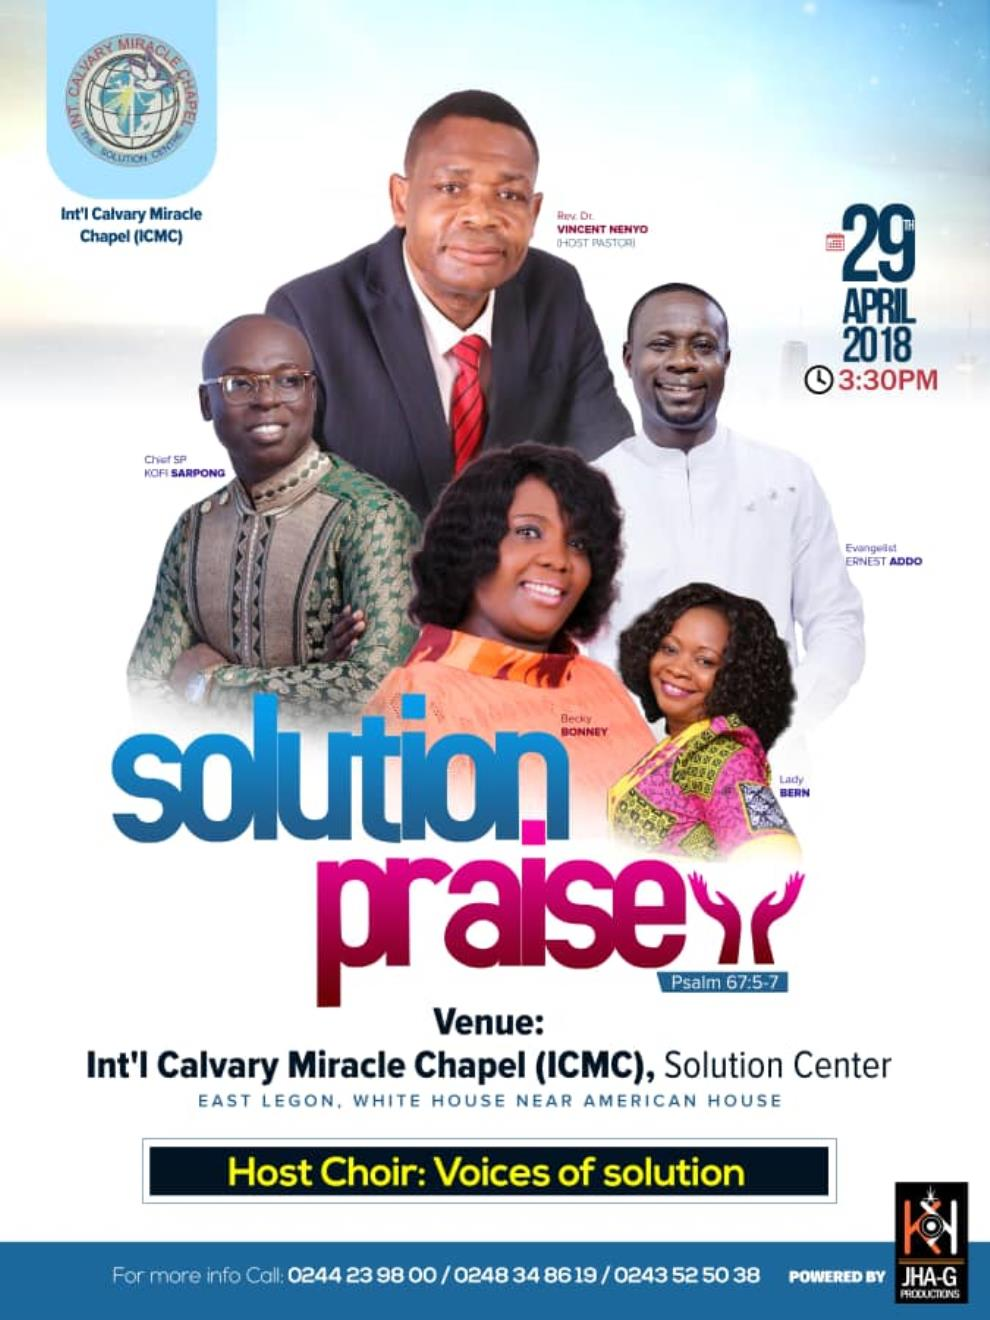 Kofi Sarpong, Becky Bonney, Others Headline 'Solution Praise' On Sunday